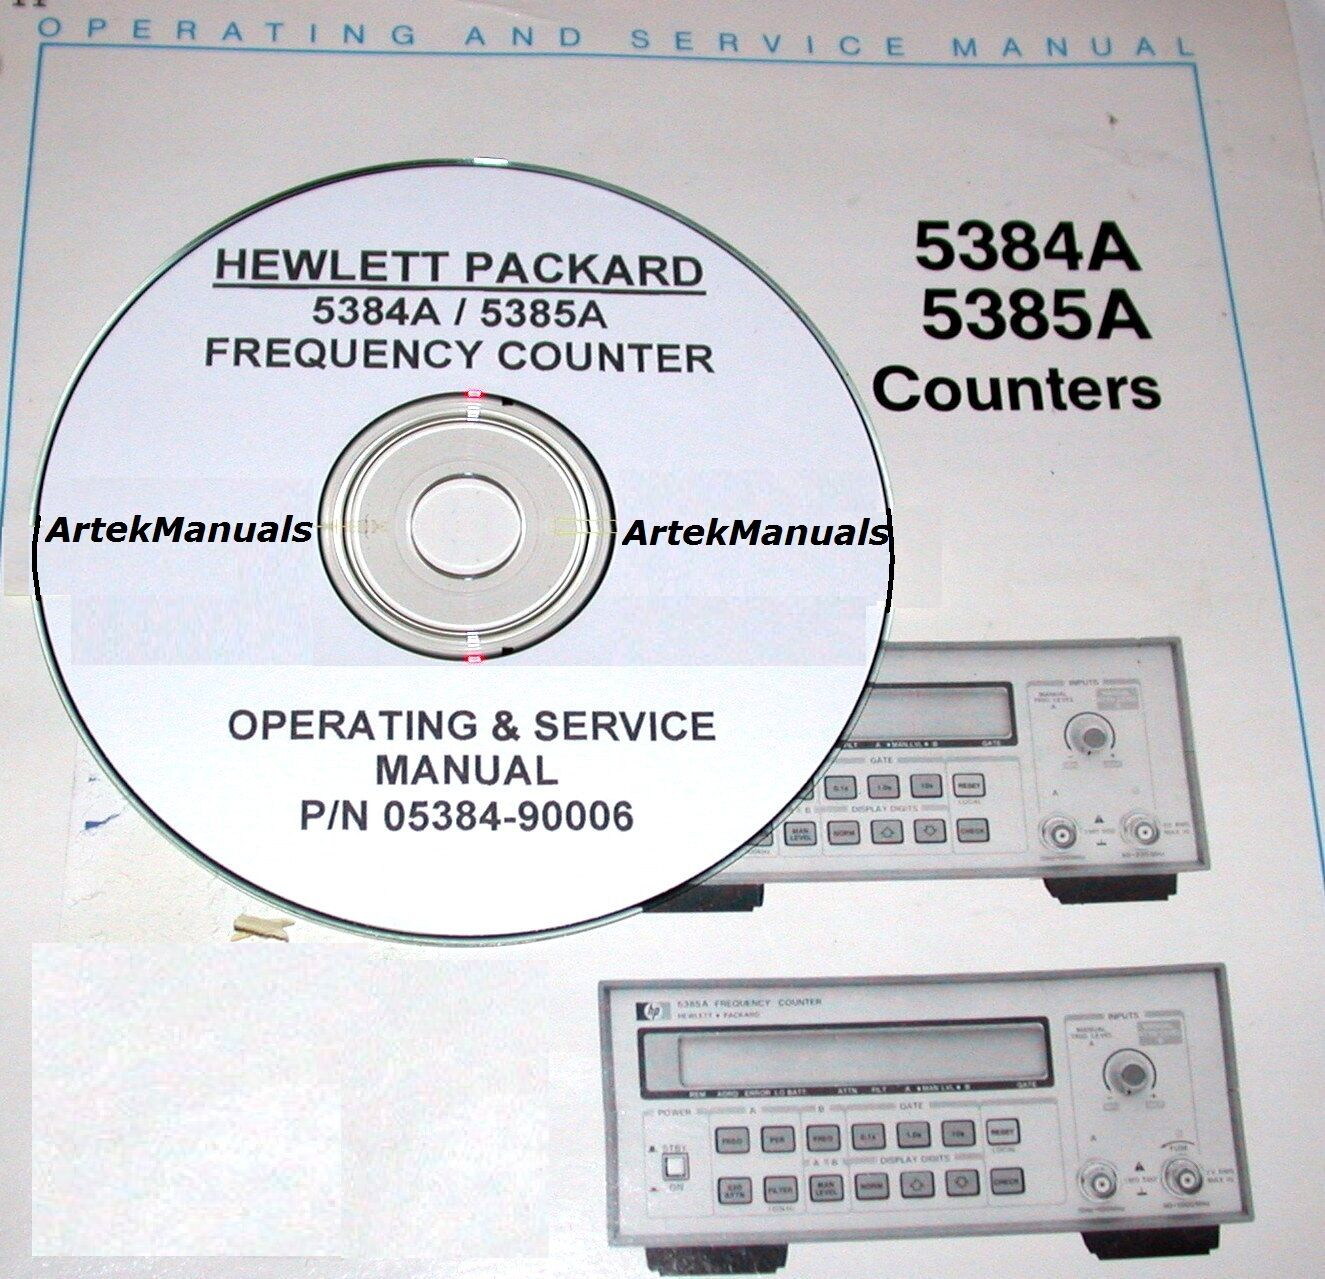 Hewlett Packard Frequency Counter Schematic Trusted Wiring Diagrams Diagram Operating Service Manual For The 5384a 5385a Divider